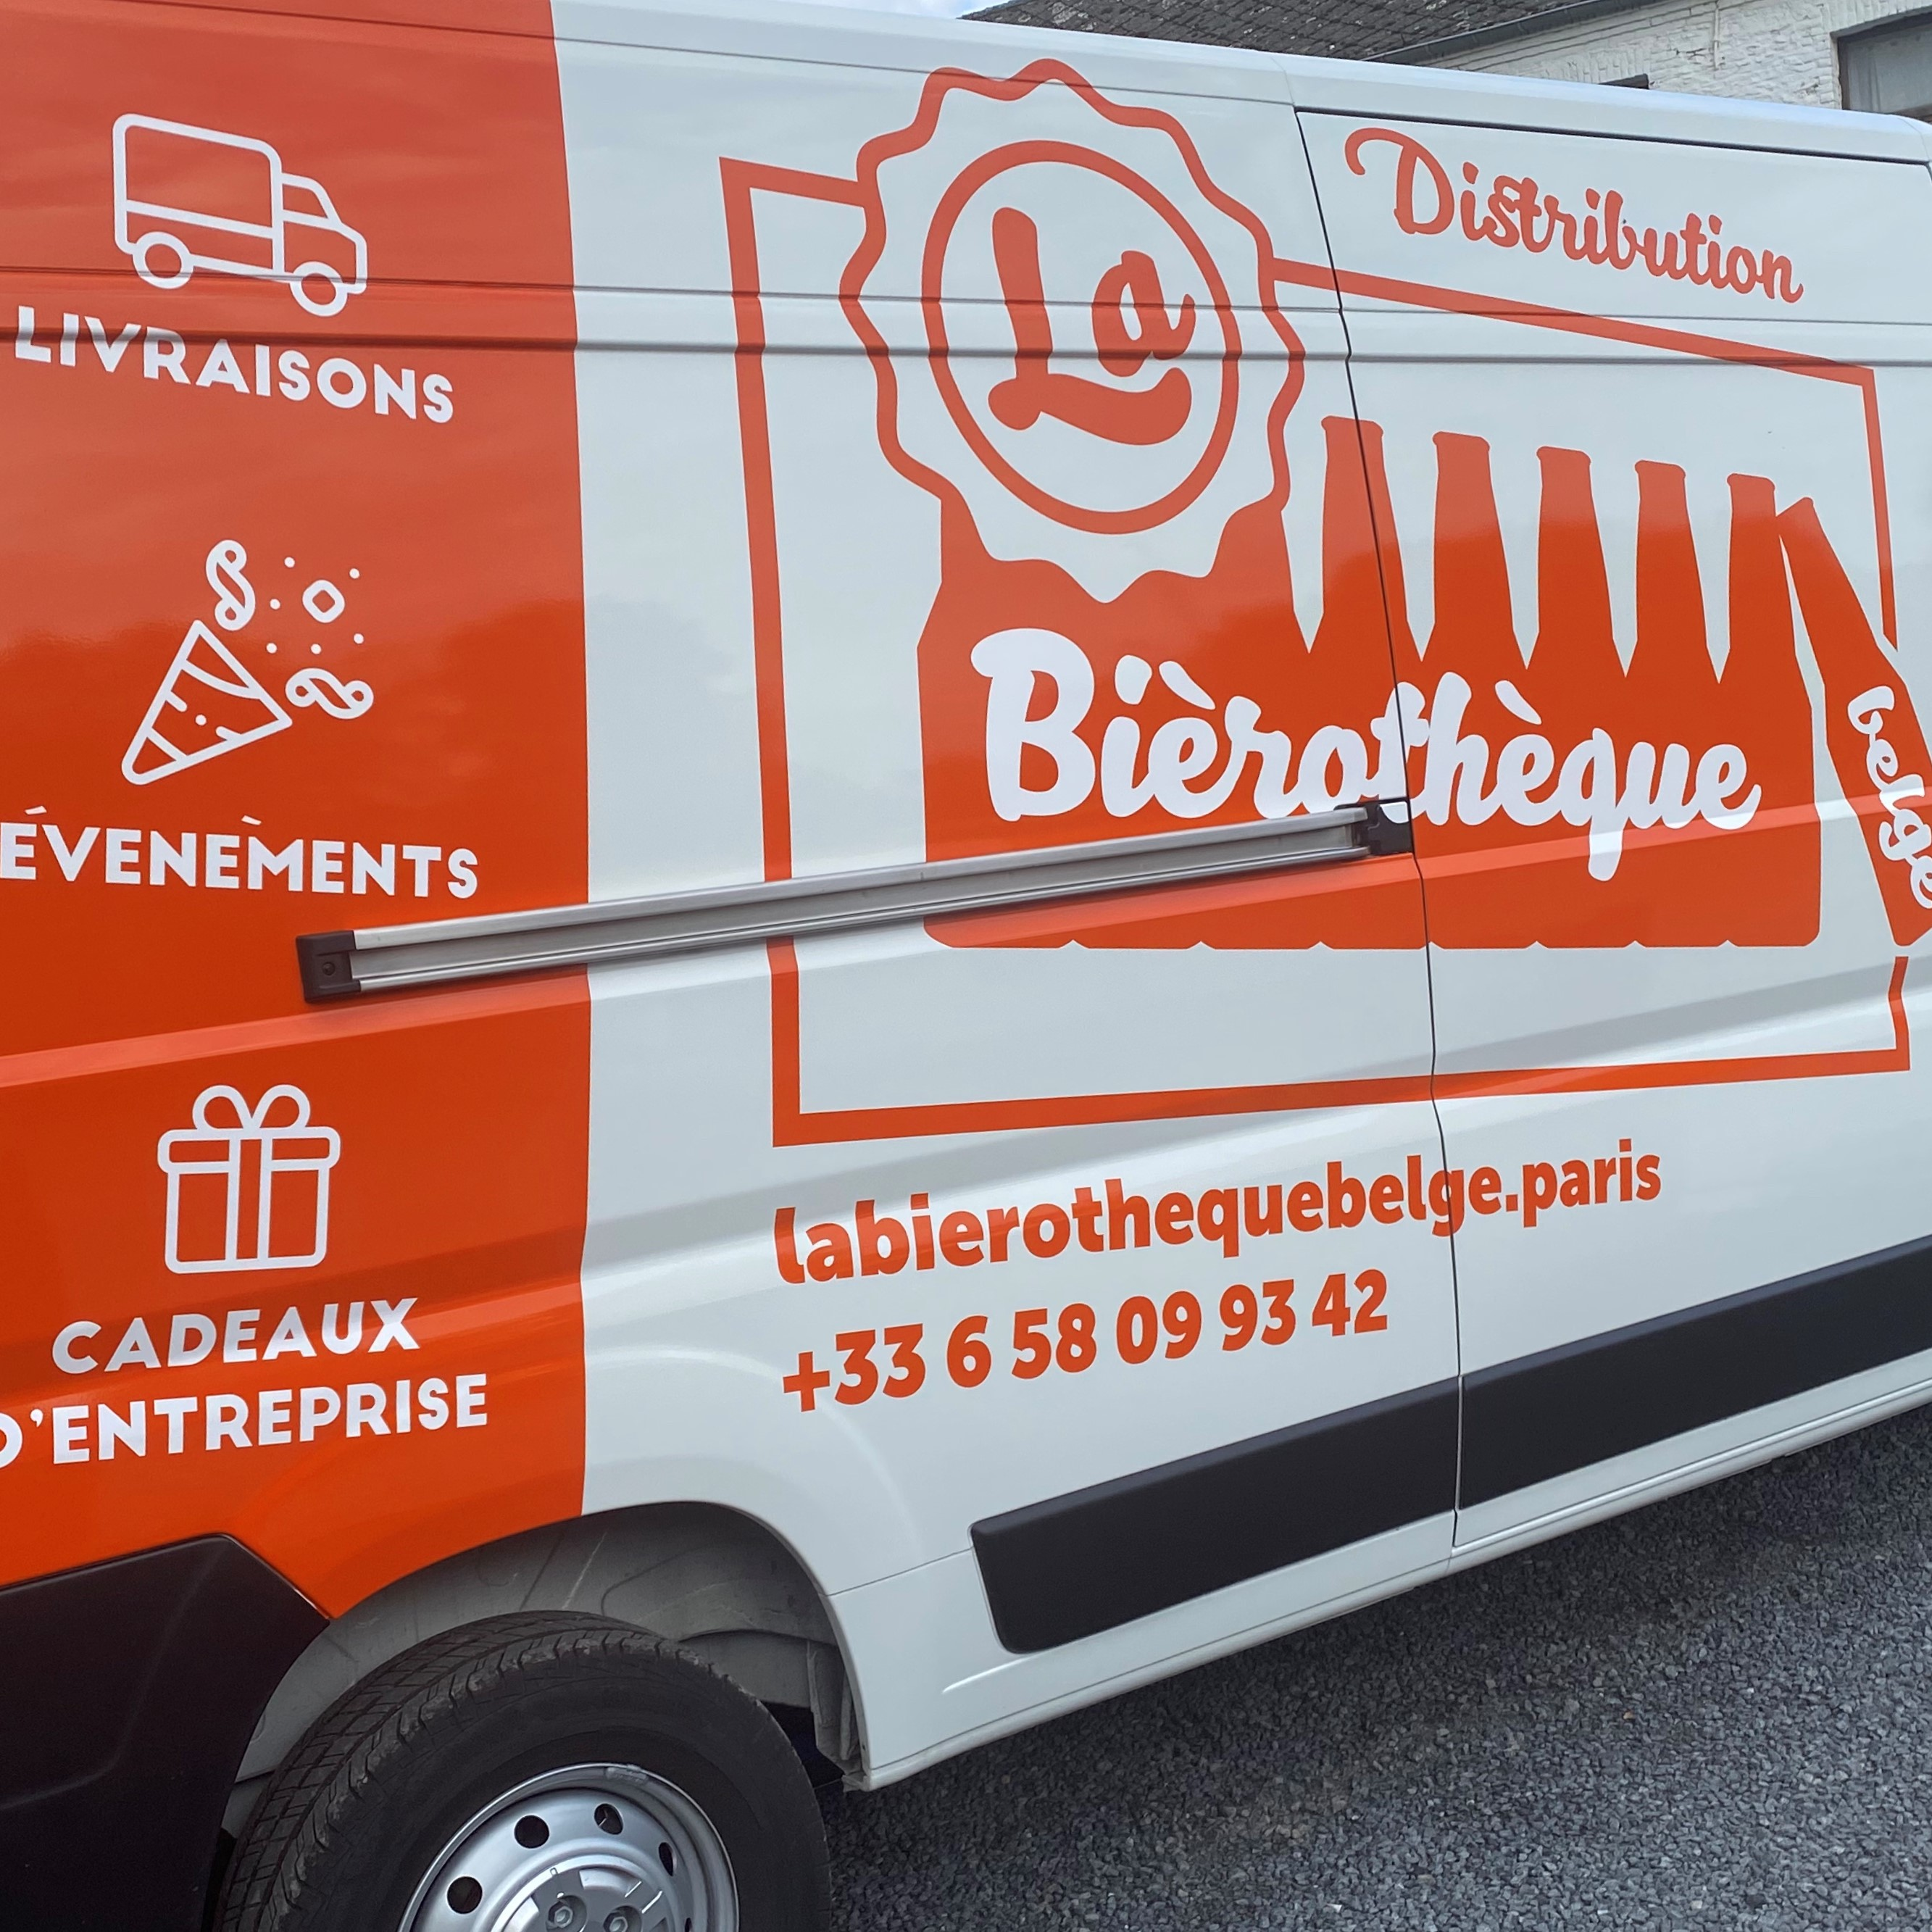 Bierotheque-belge-distribution